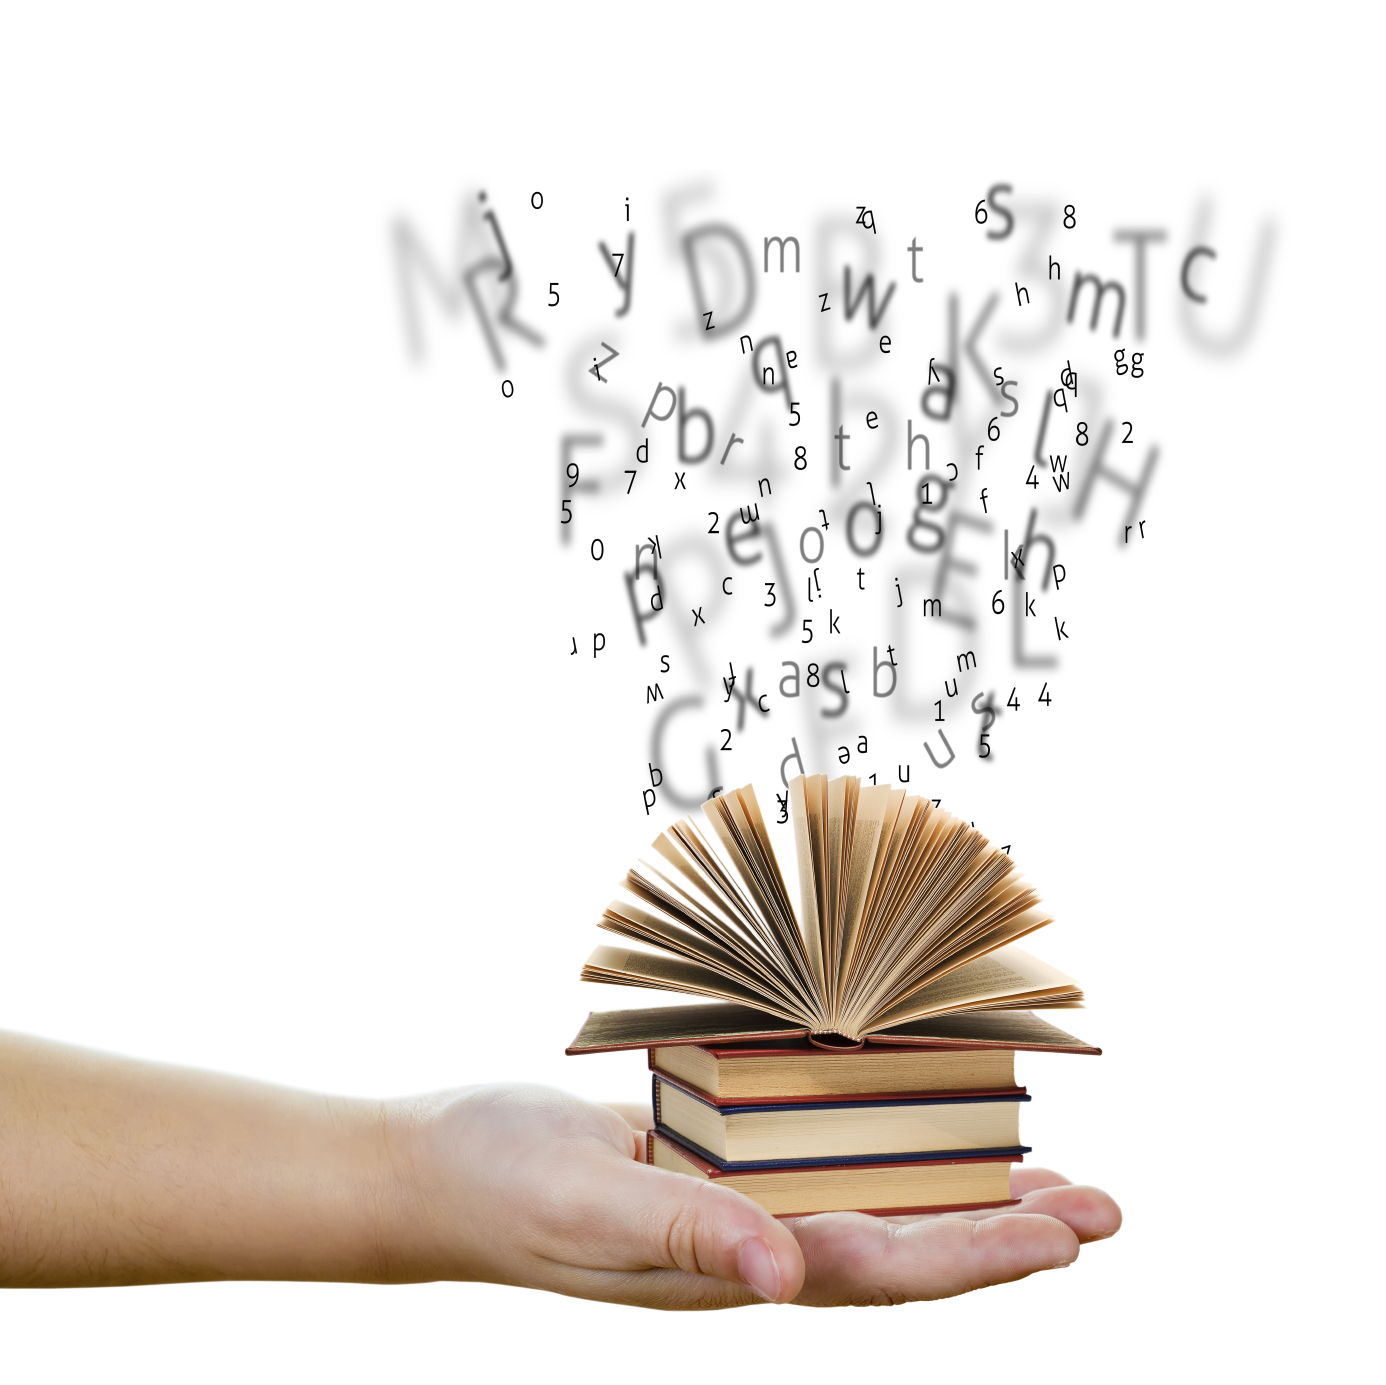 Image of a A hand holding books with words and letters representing education and knowledge concept